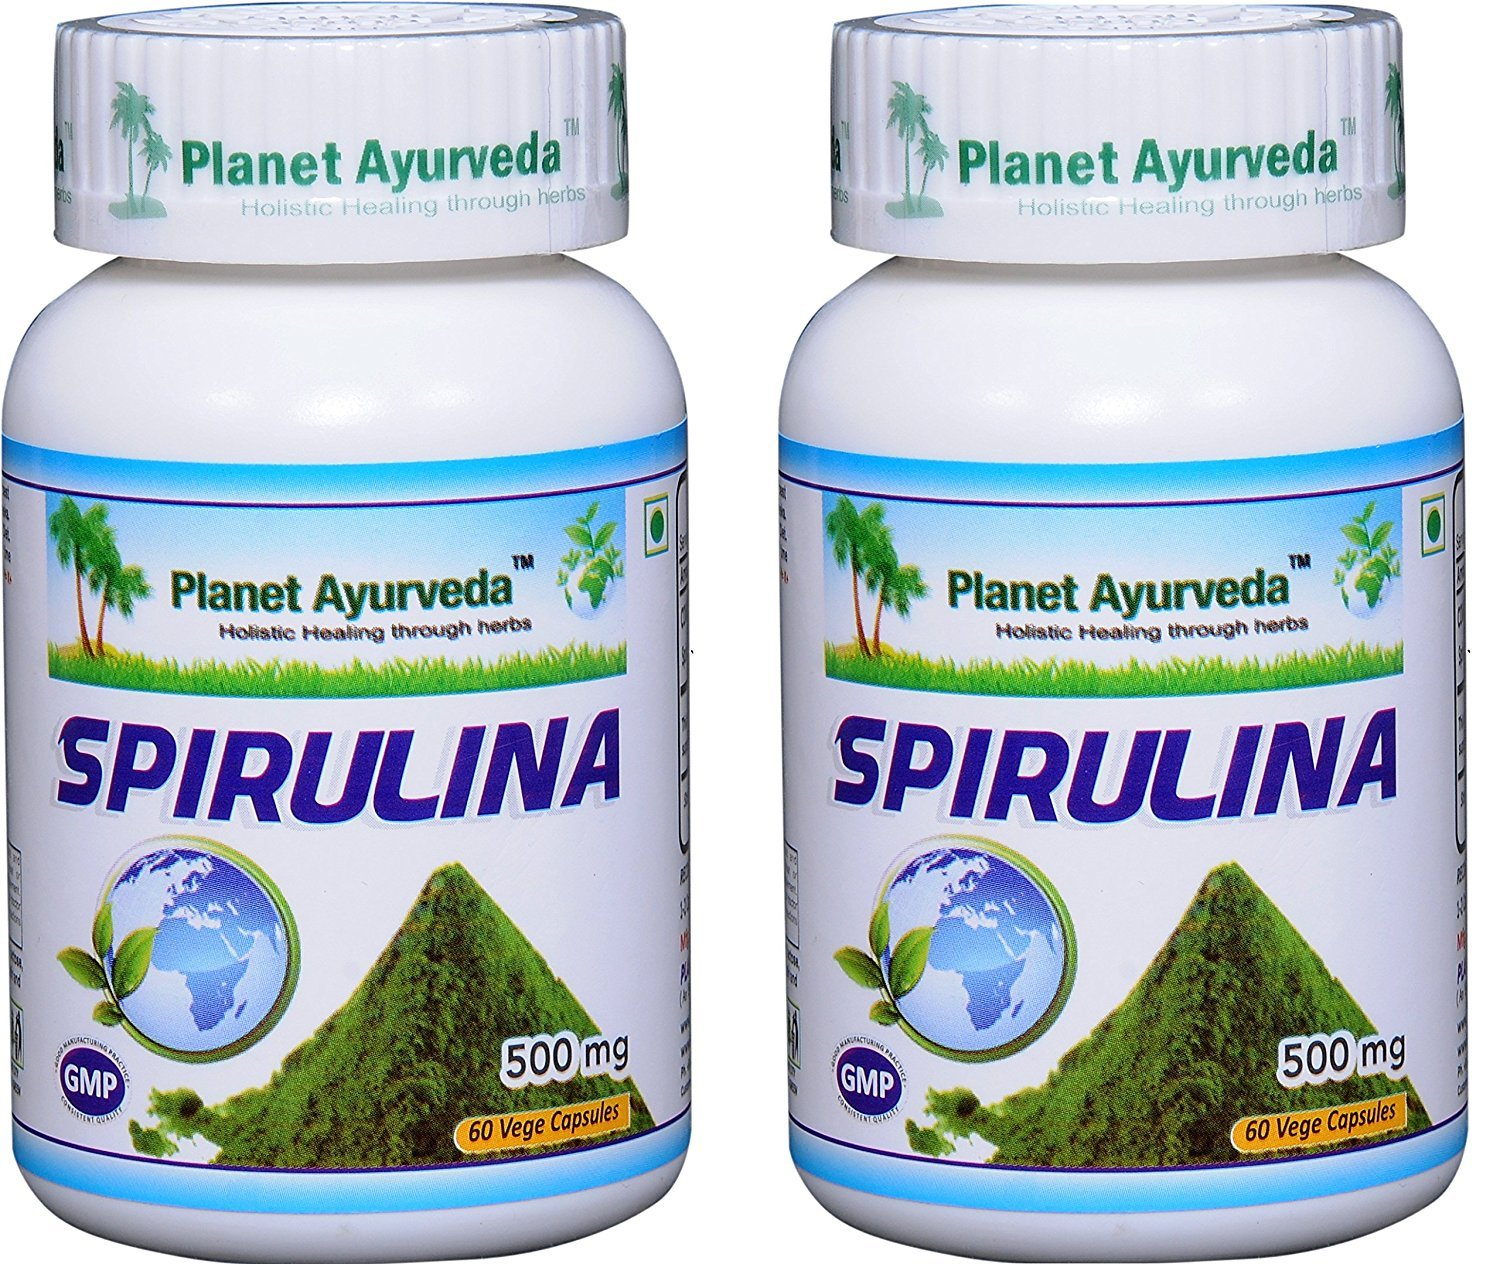 Spirulina - 2 bottles (each 60 capsules, 500mg) - algae 100% natural - Planet Ayurveda (in USA)